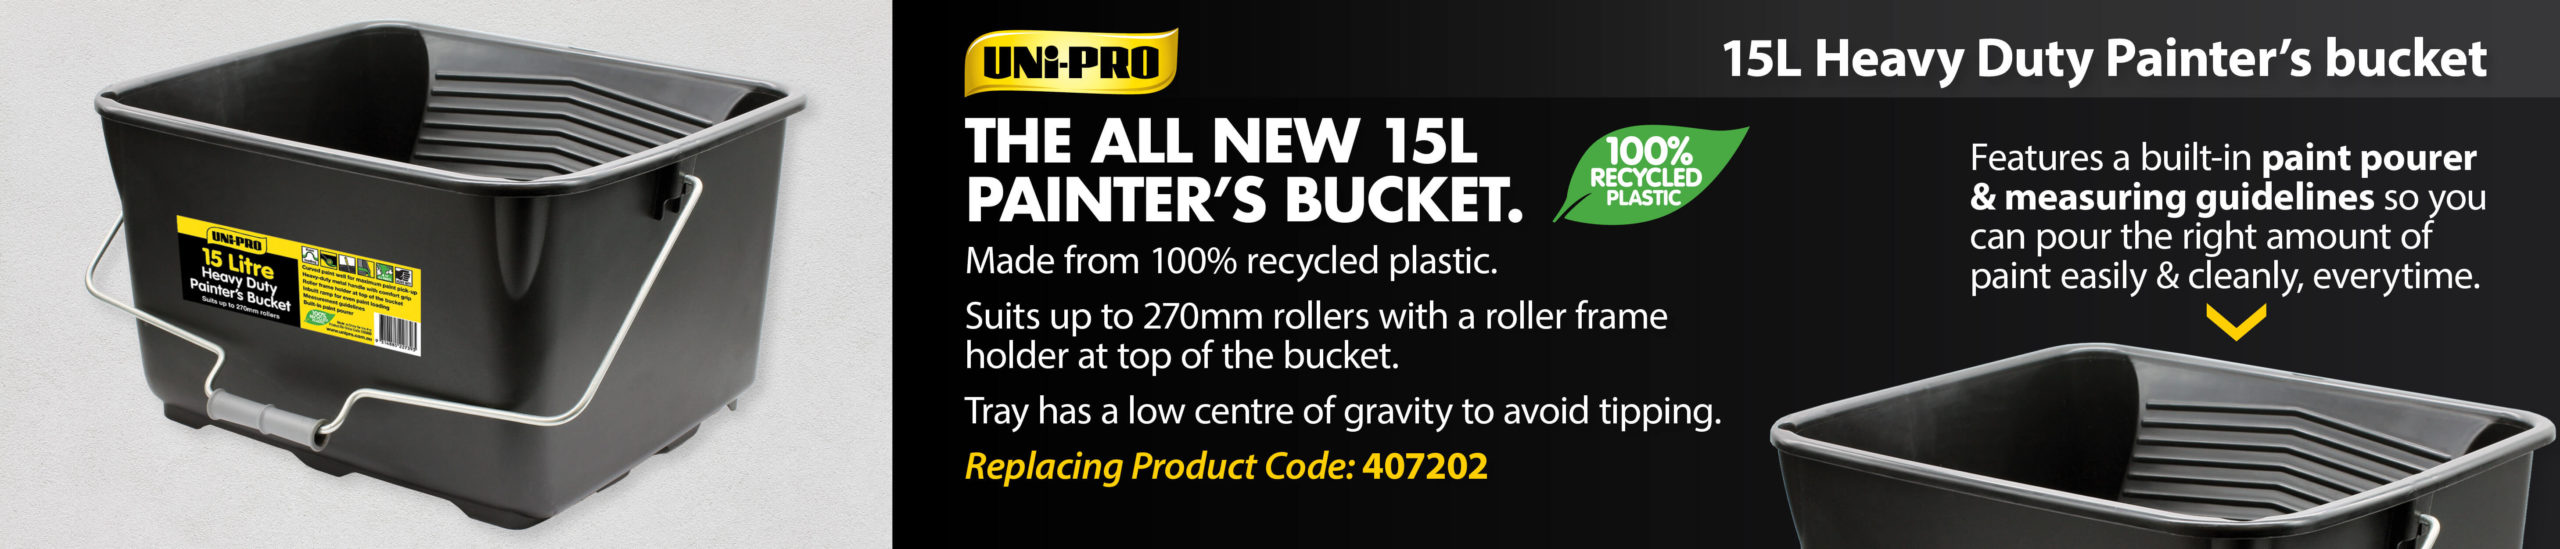 150dpi 2800x600-Slider-15L-Painters Bucket-compressed